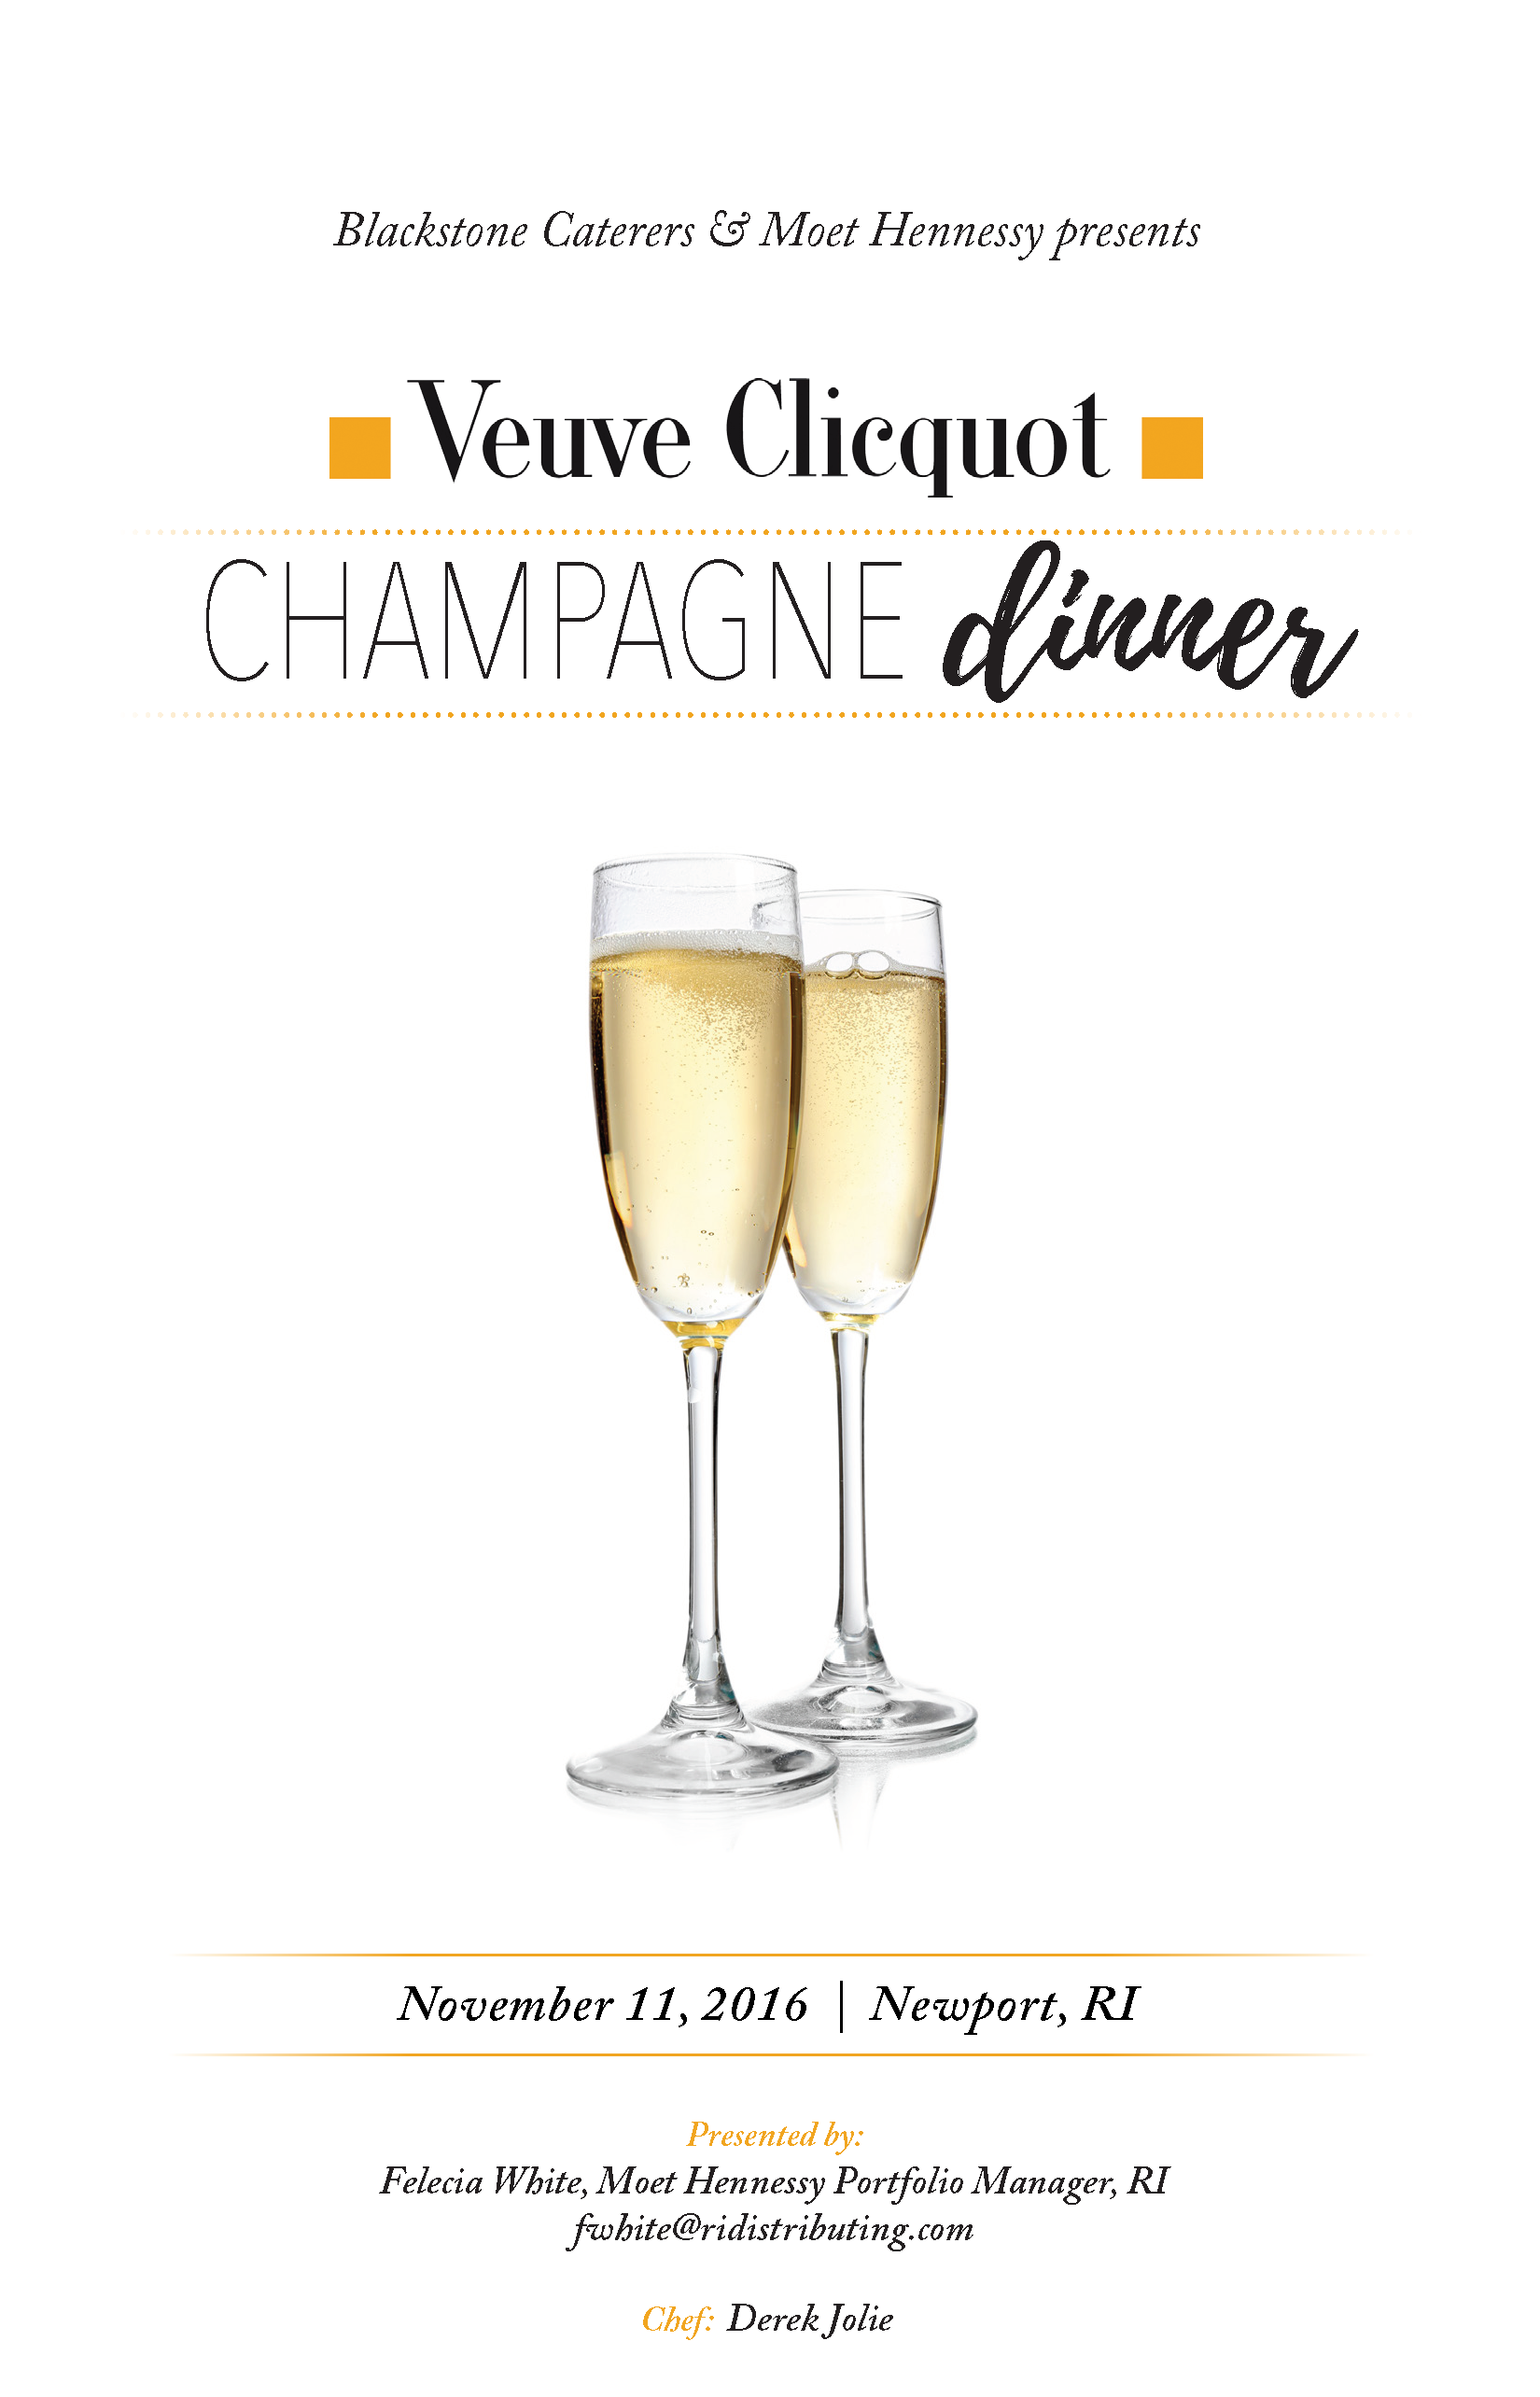 Blackstone Catering Veuve Champagne Dinner